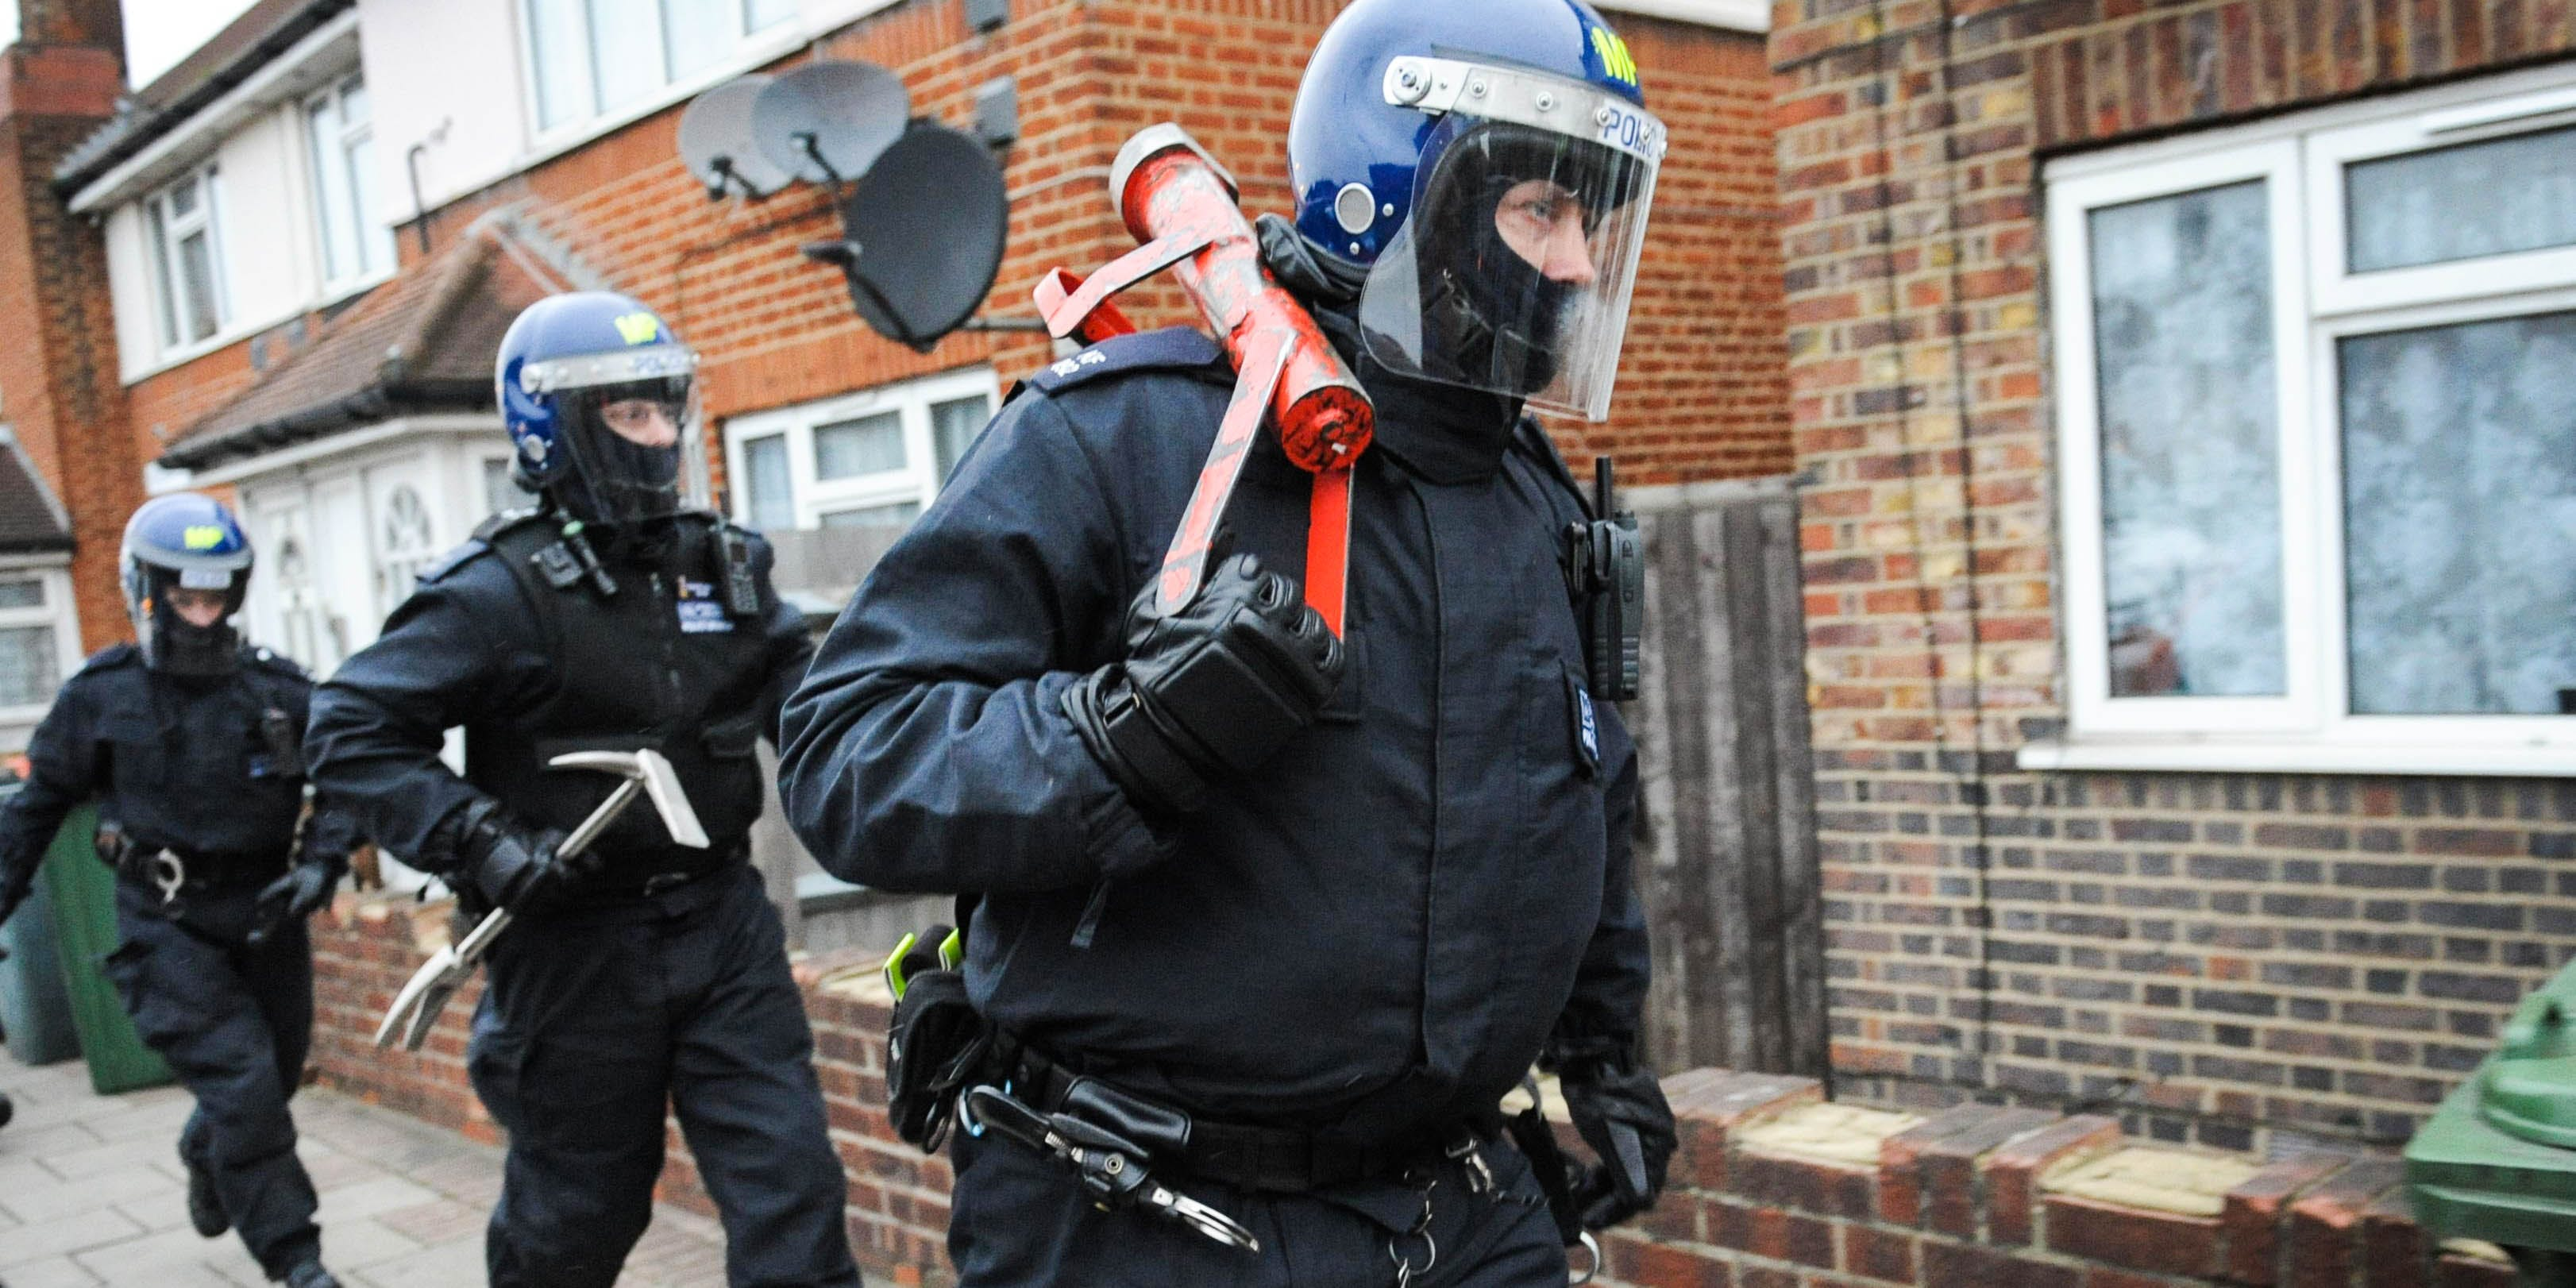 UK Police Leader Simon Kempton Says The Middle Class, Not The Poor, Fund UK's Drug Gangs